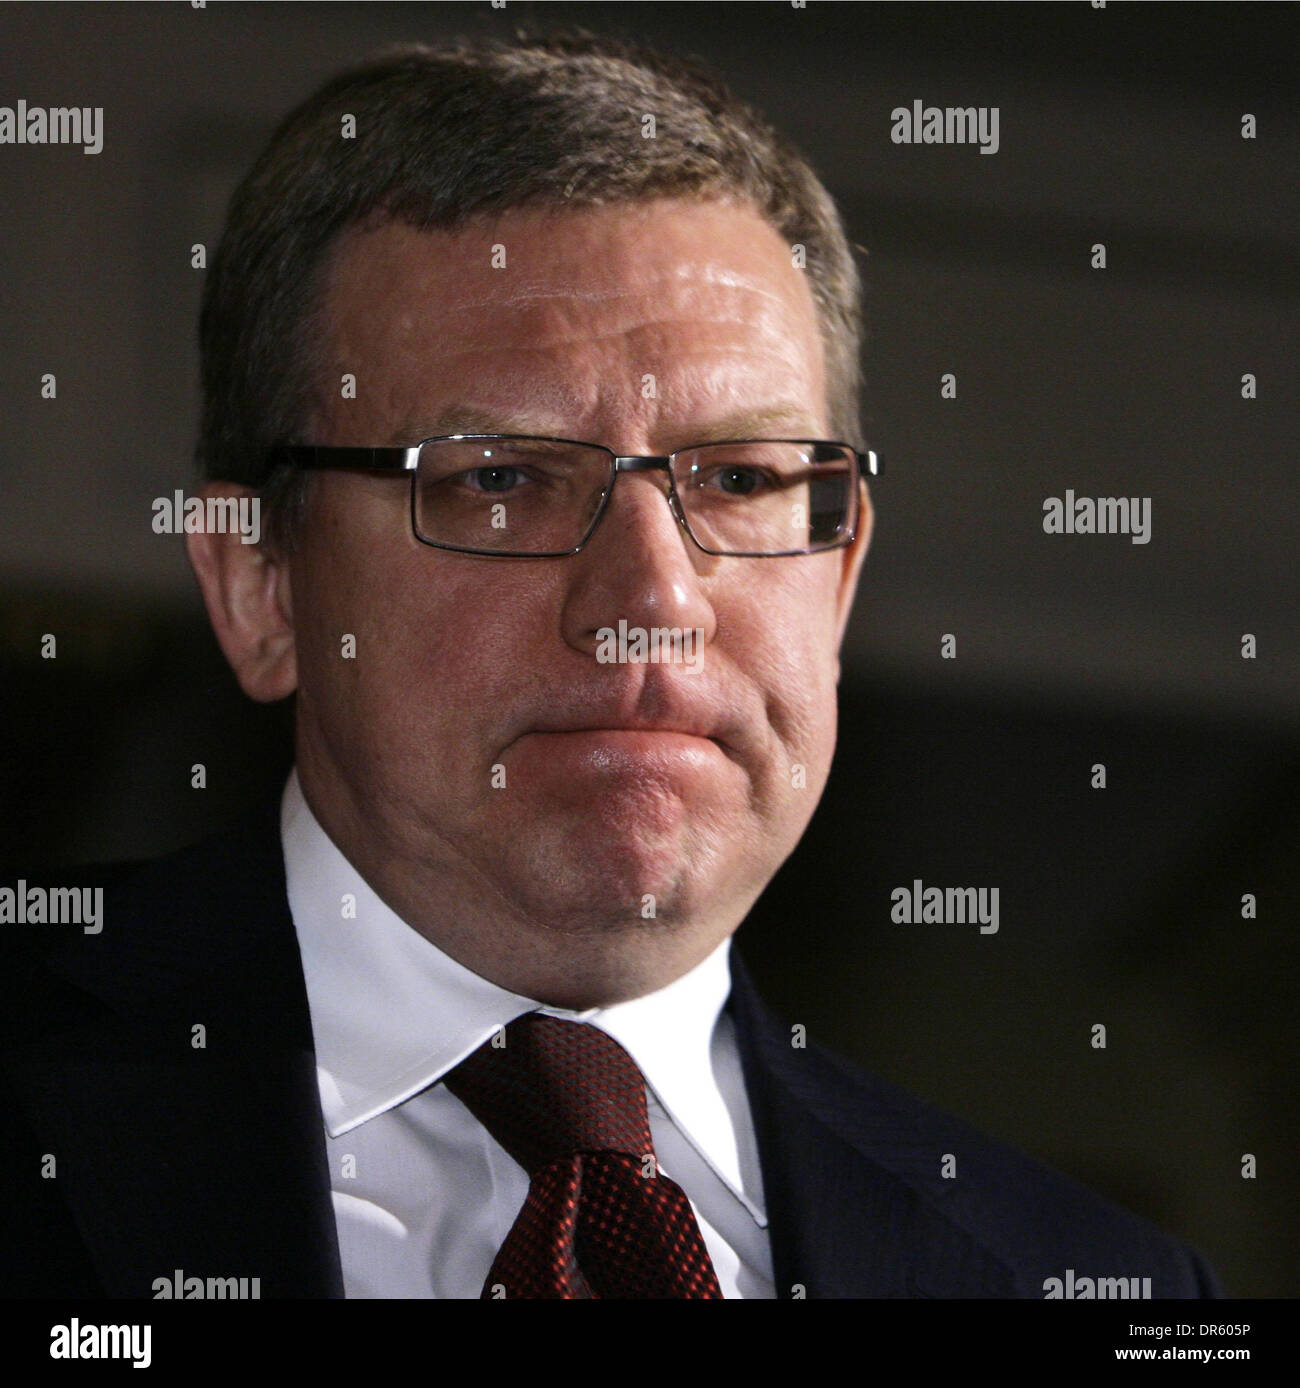 Global Investment and Finance Forum in Moscow bringing together Russian & international corporates; investment bankers; investors & other leading representatives from the world of finance . Pictured: russian Finance Minister Alexey Kudrin - Stock Image